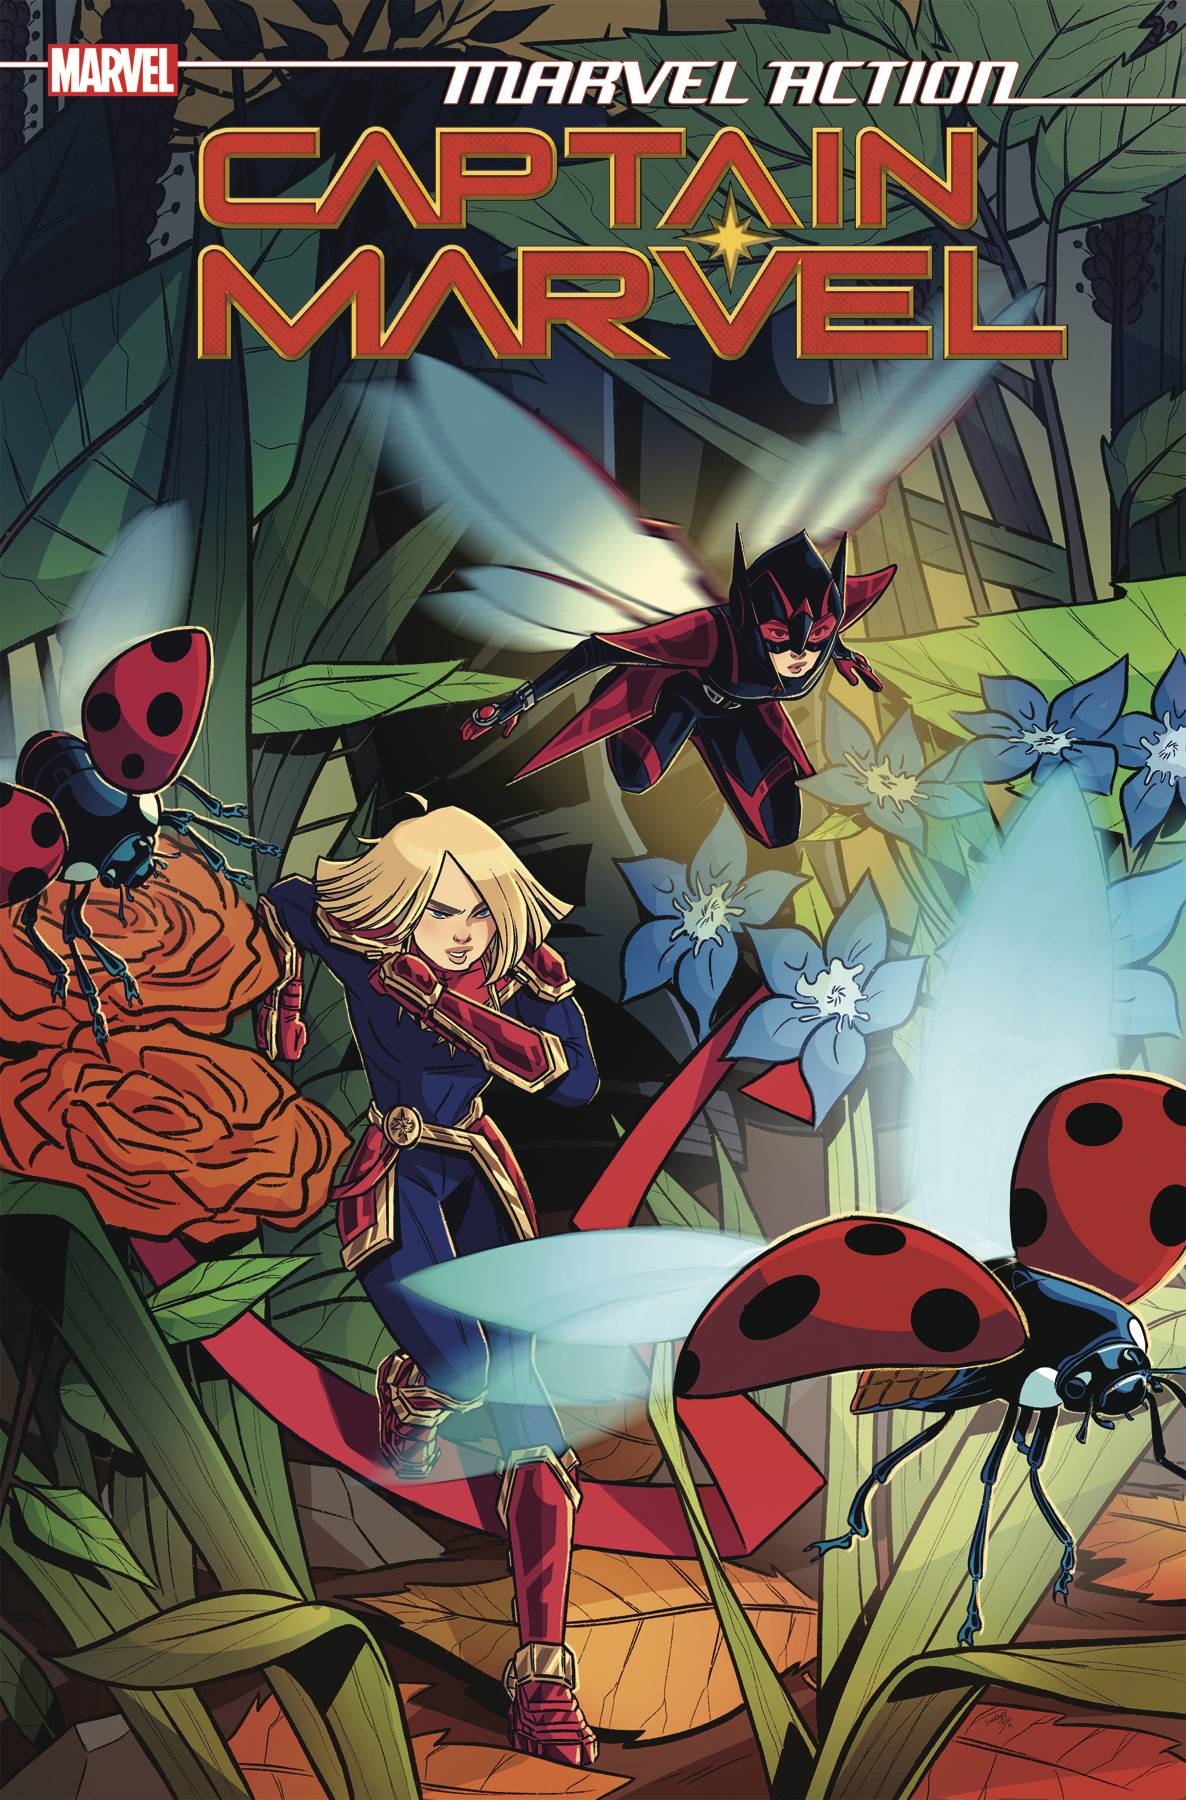 MARVEL ACTION CAPTAIN MARVEL #5 CVR A BOO